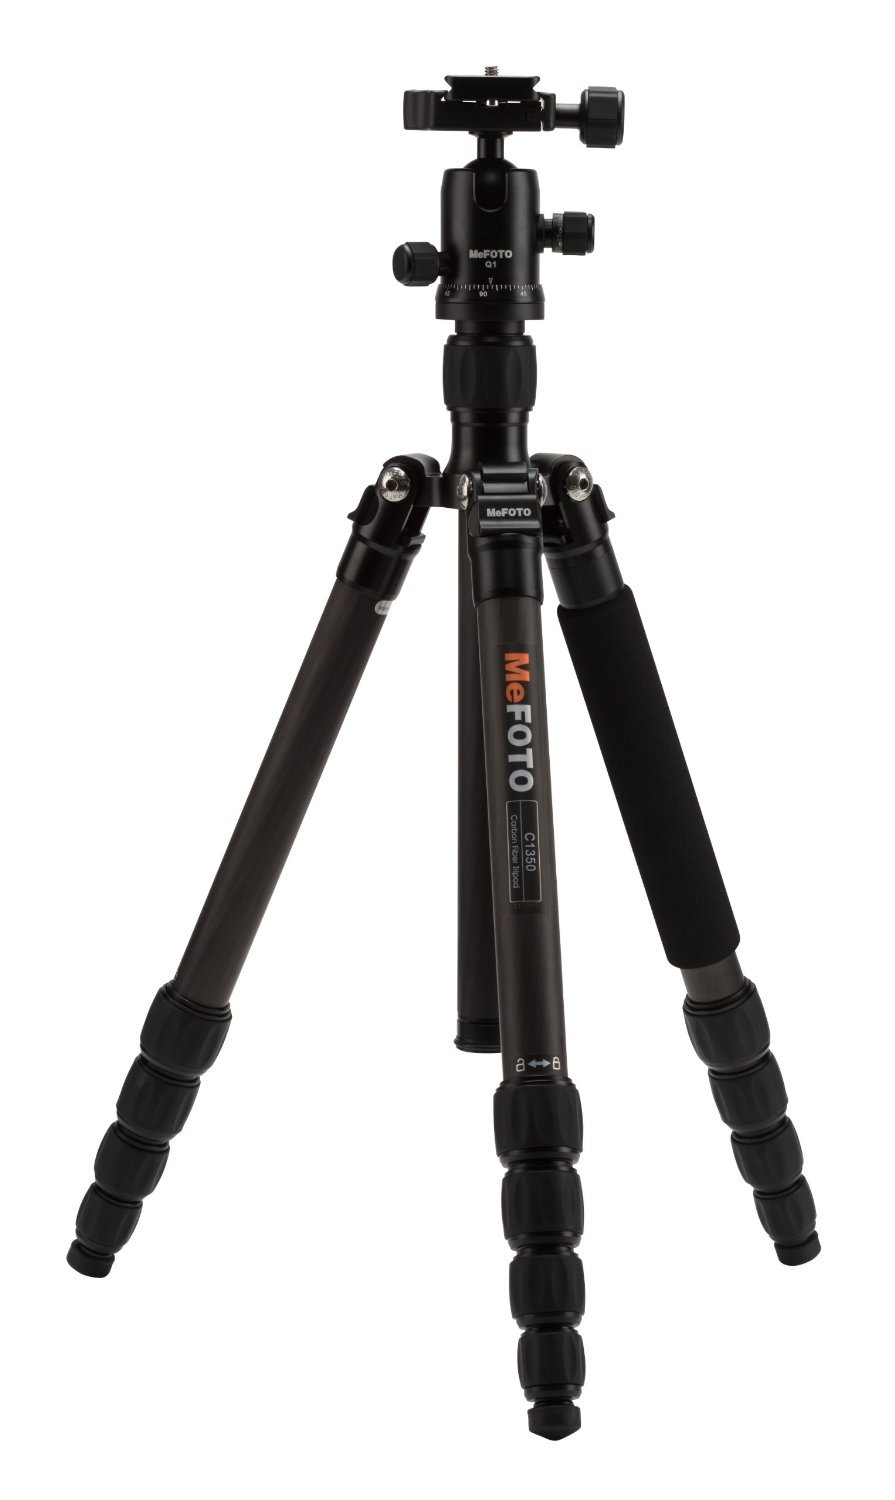 MeFOTO C1350Q1K Carbon Fiber Roadtrip Travel Tripod Kit (Black) [並行輸入品]   B019SZ4FJO